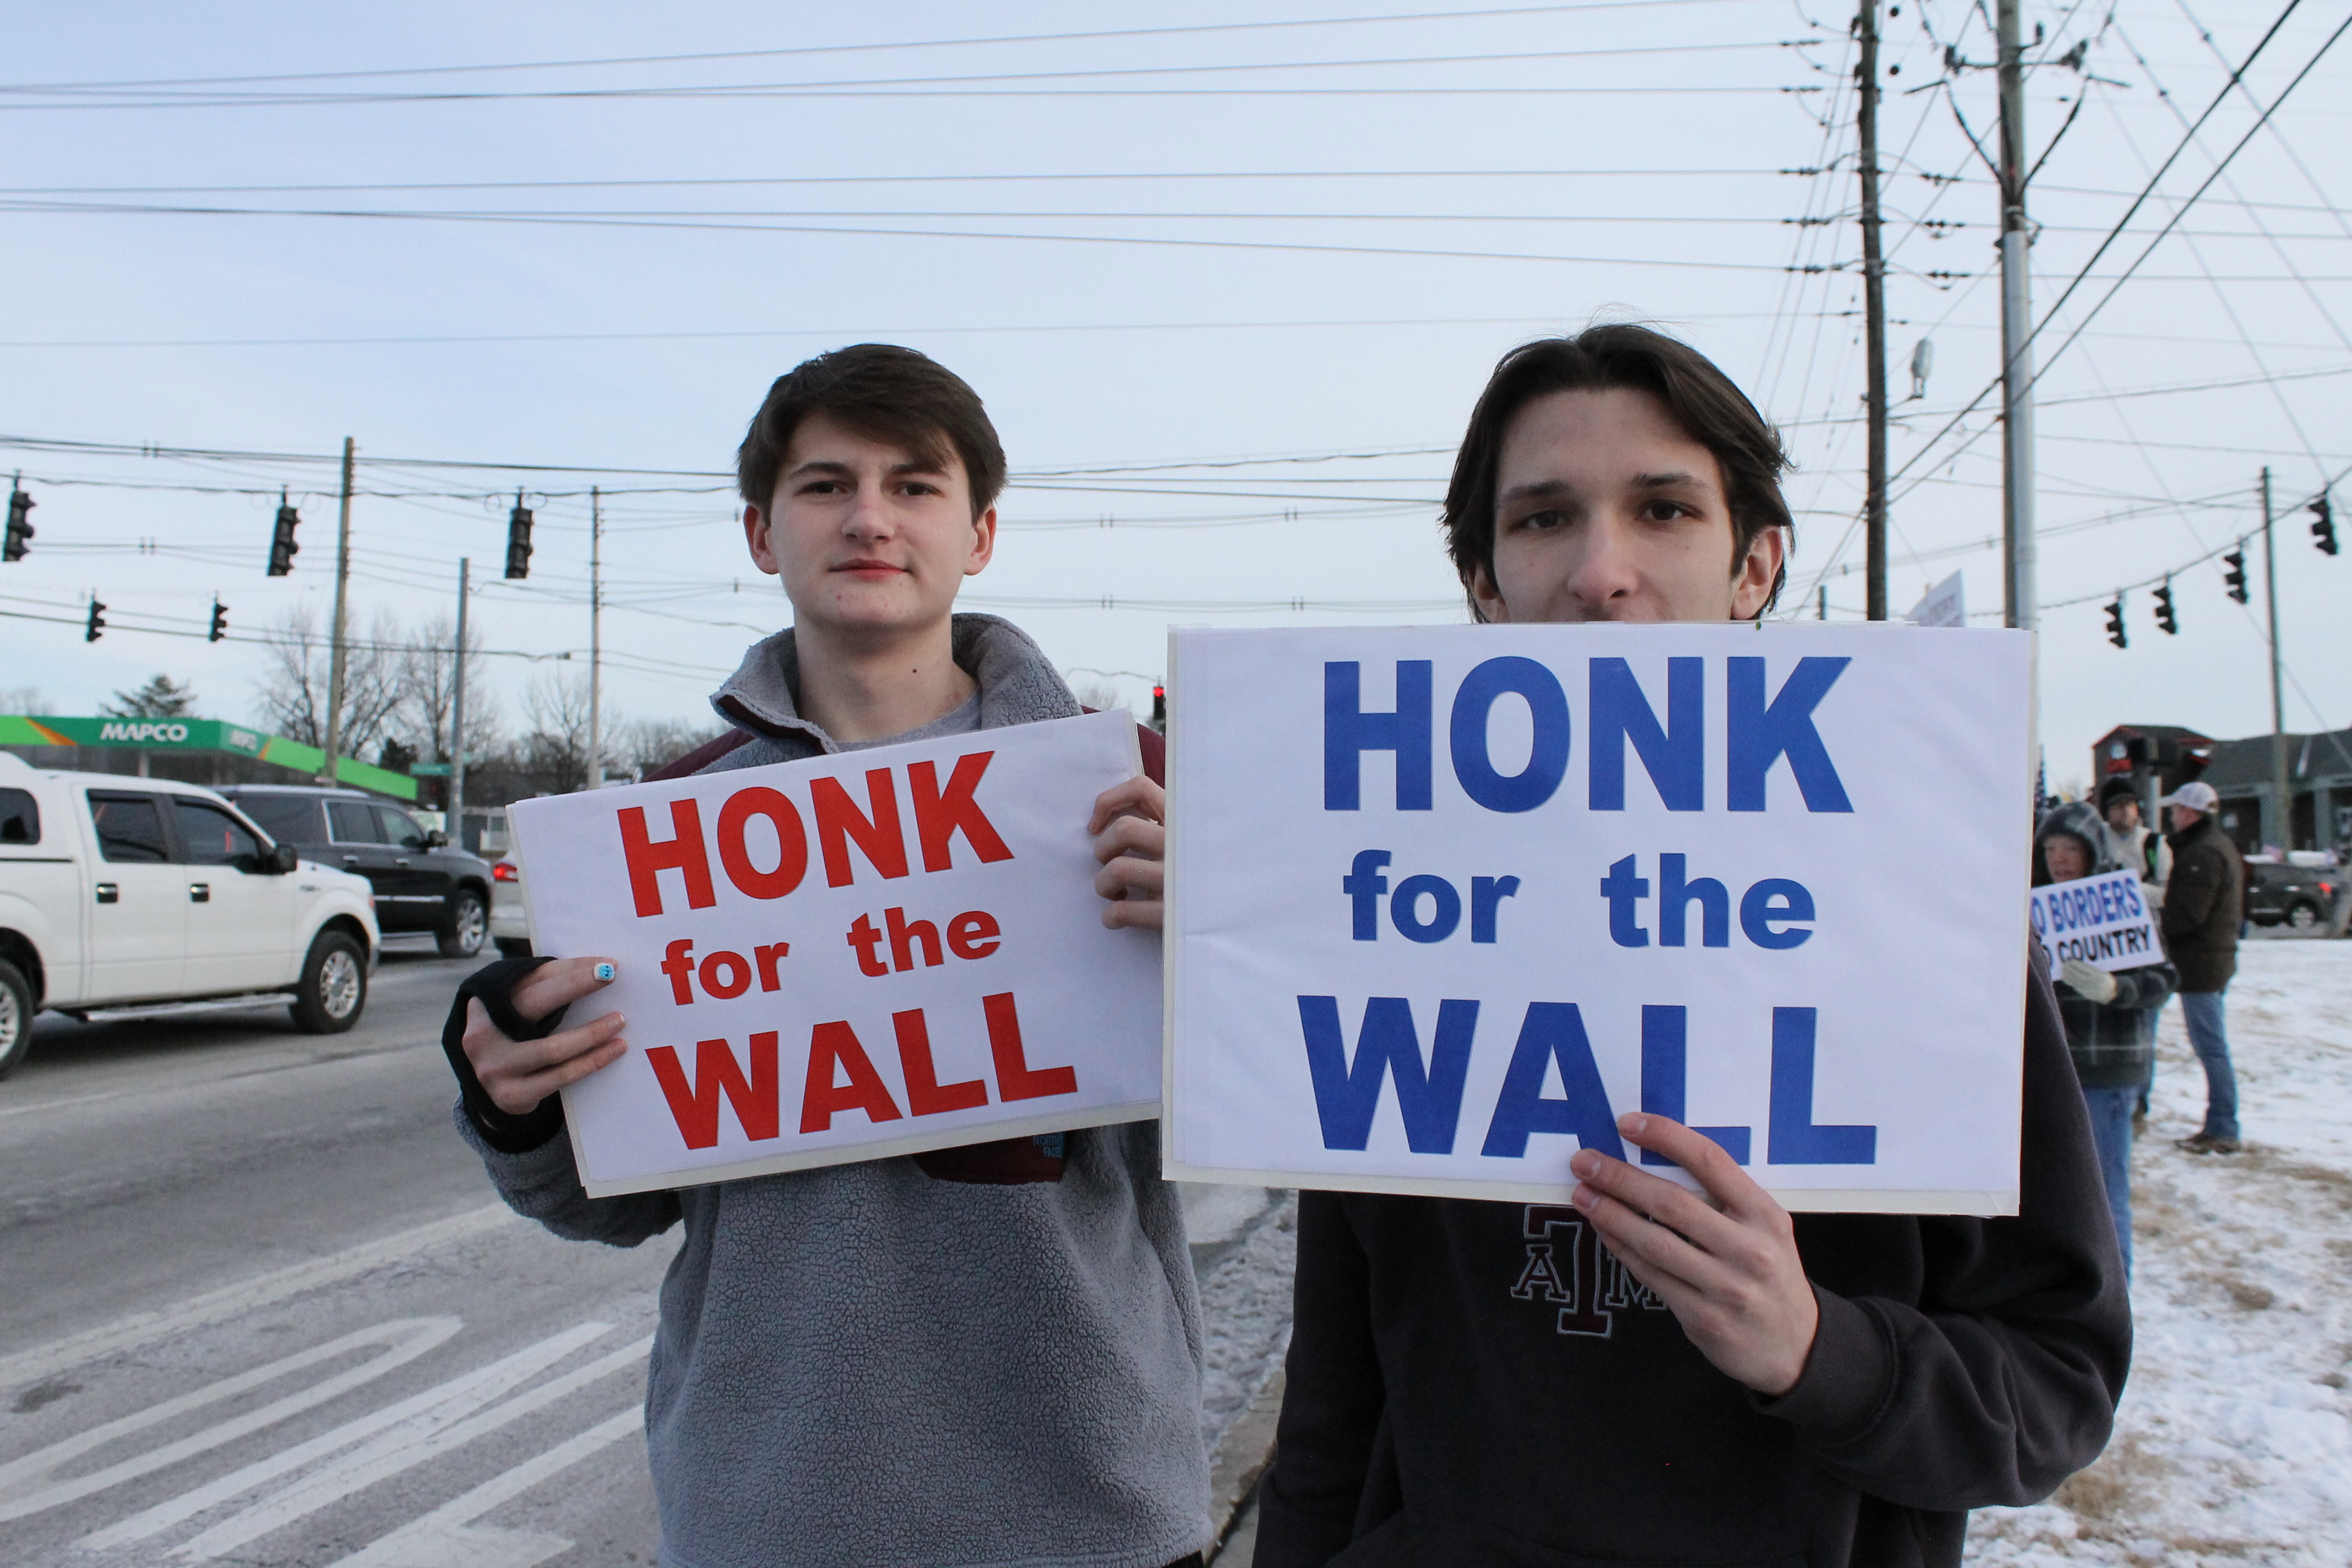 Honk for the Wall